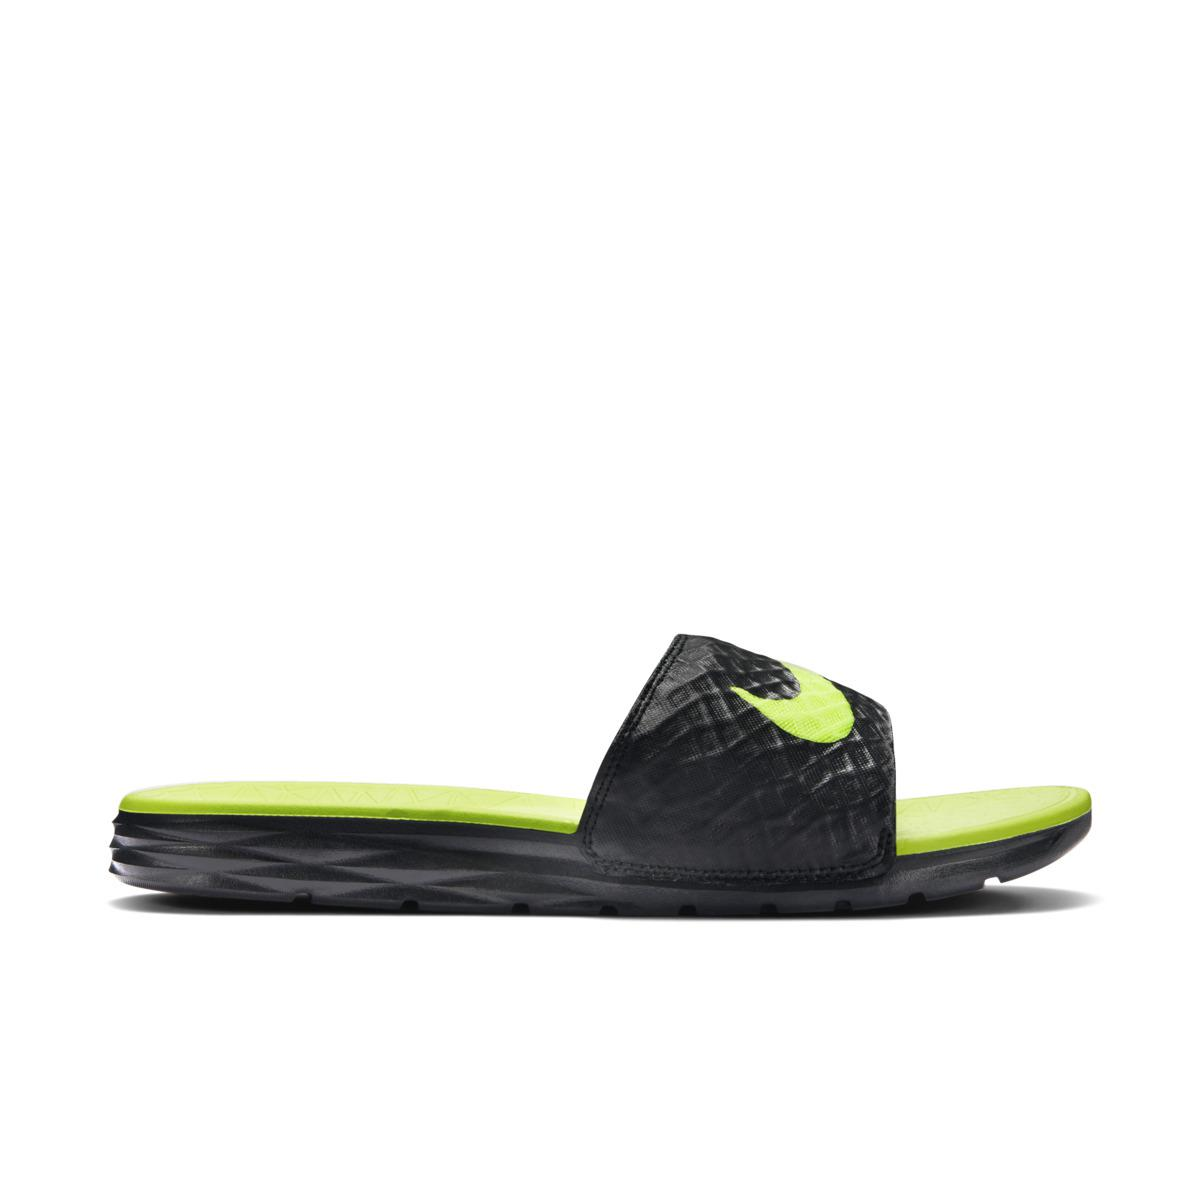 6a60a6d47d10 Lyst - Nike Benassi Solarsoft Slide Swimming Sandals in Green